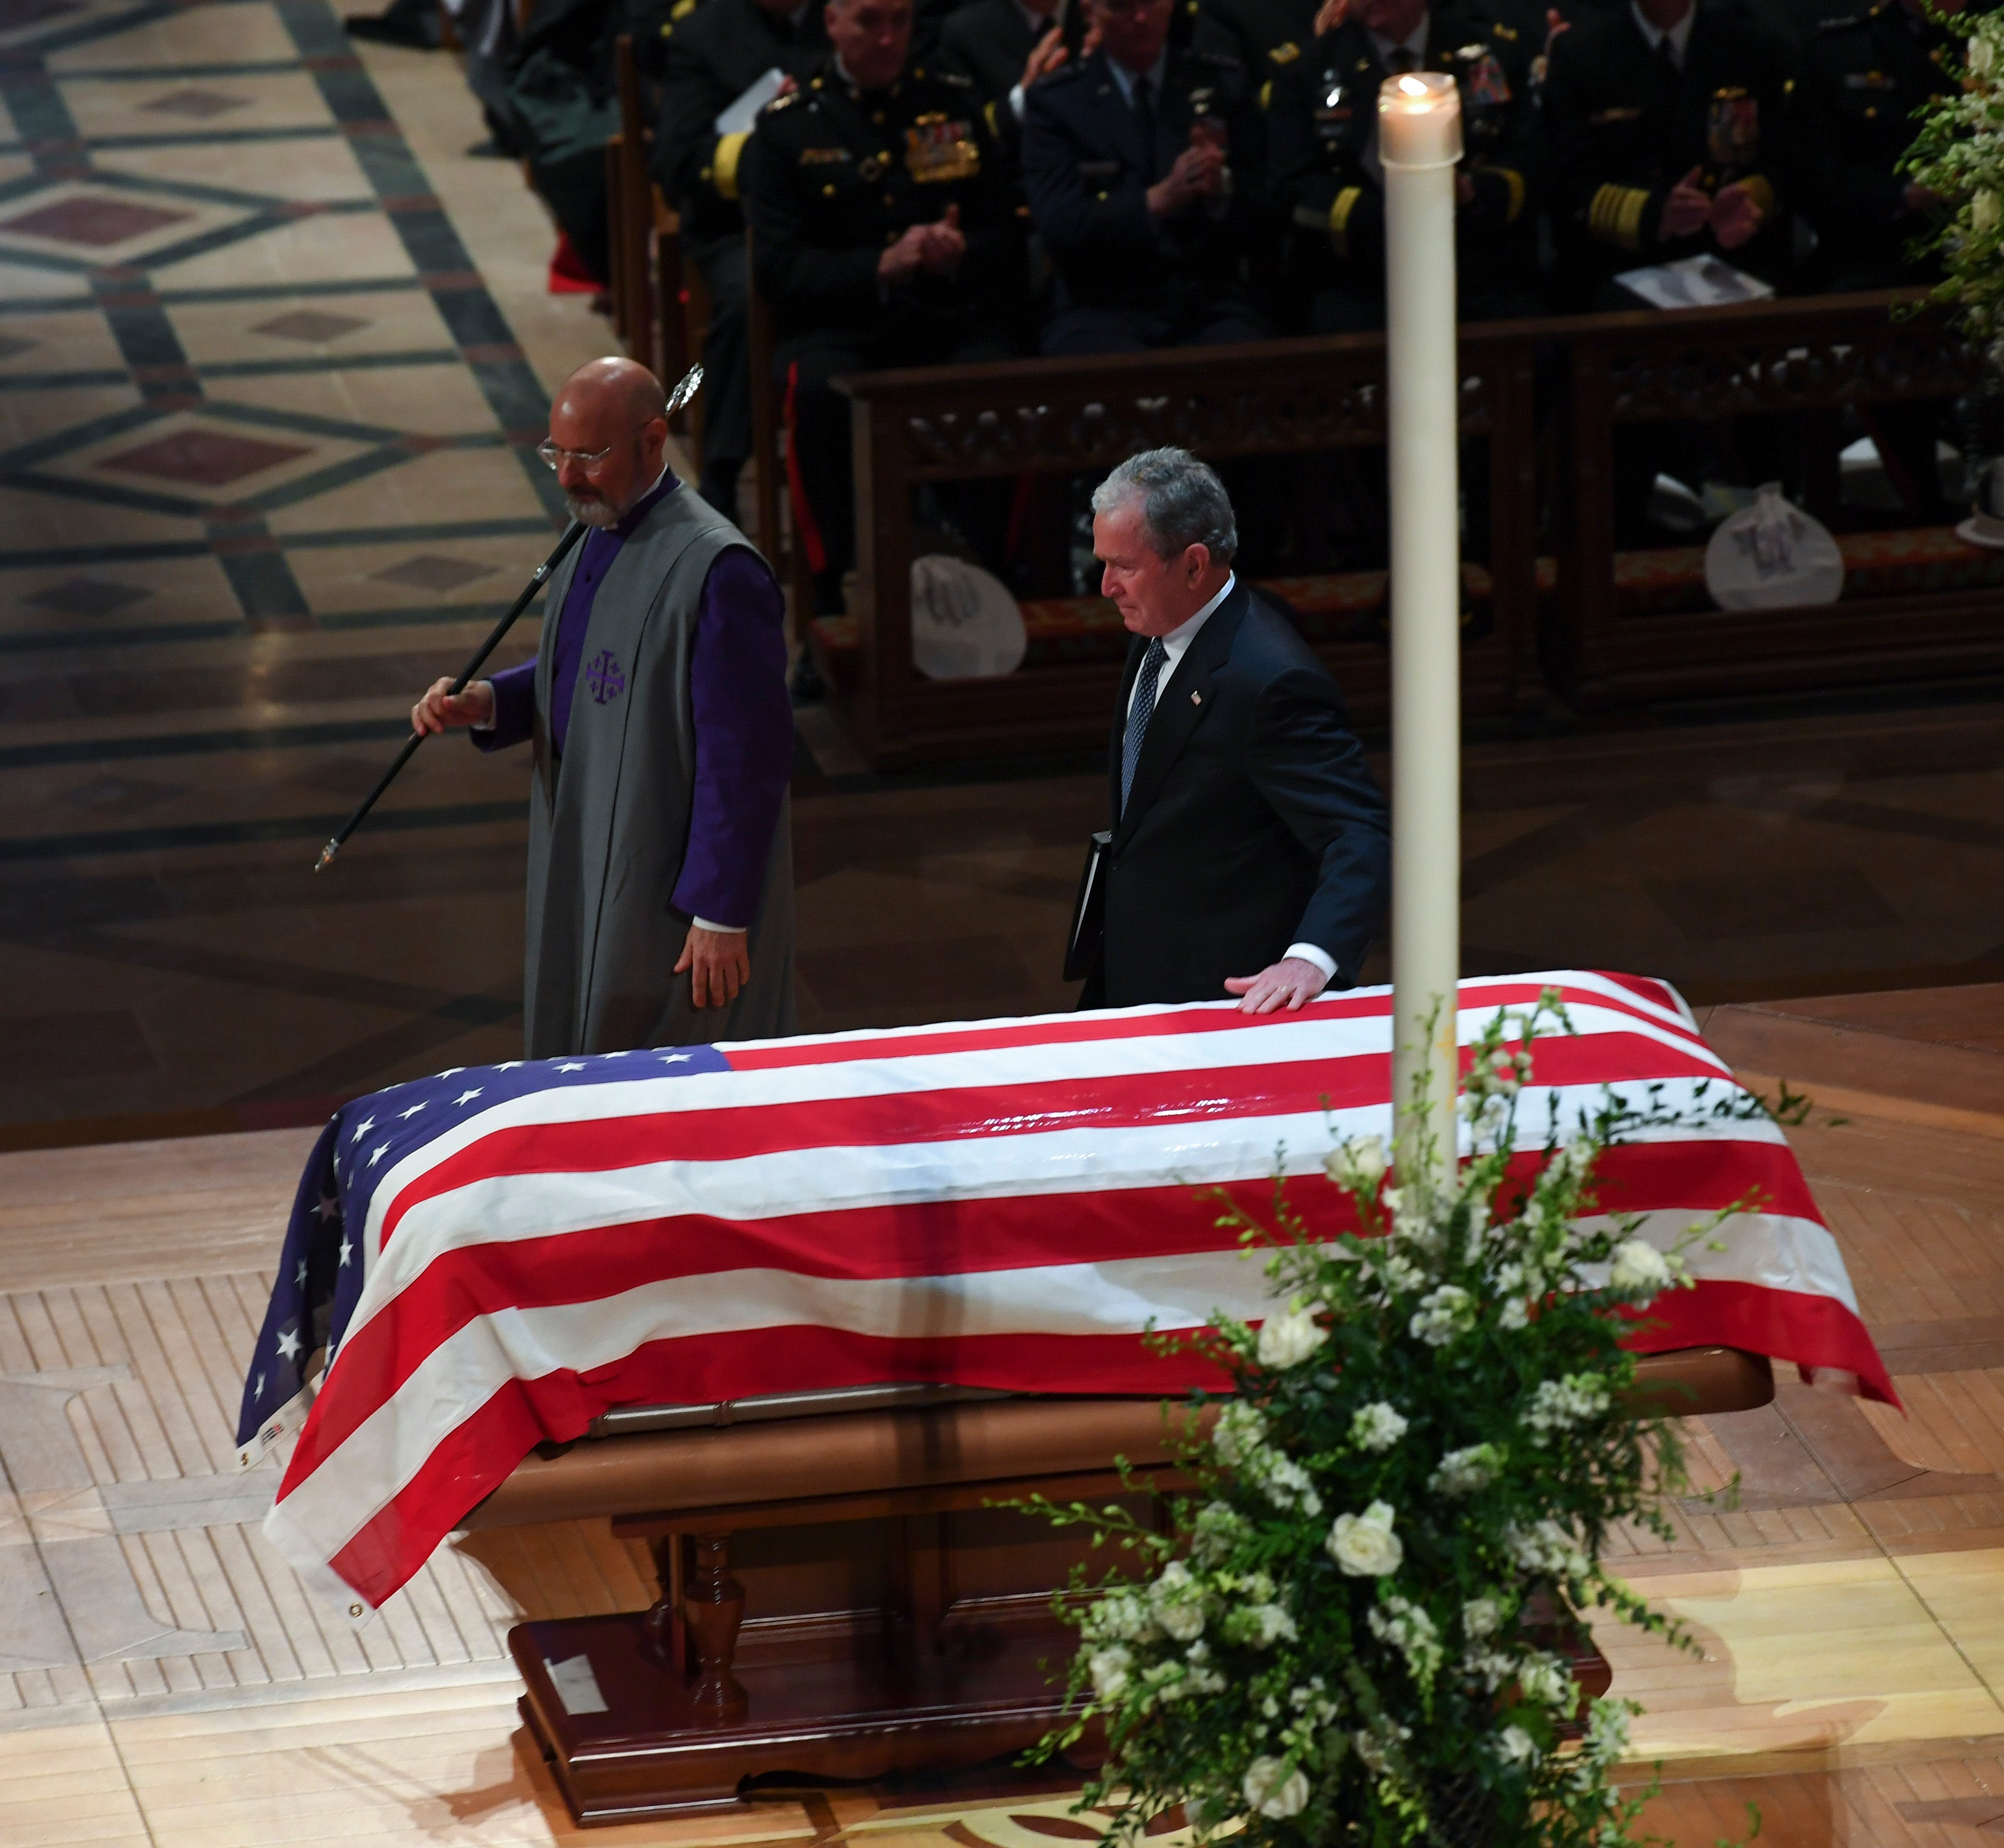 Former President George W. Bush touches his father's casket after speaking about him during the former president's state funeral at the Washington National Cathedral.